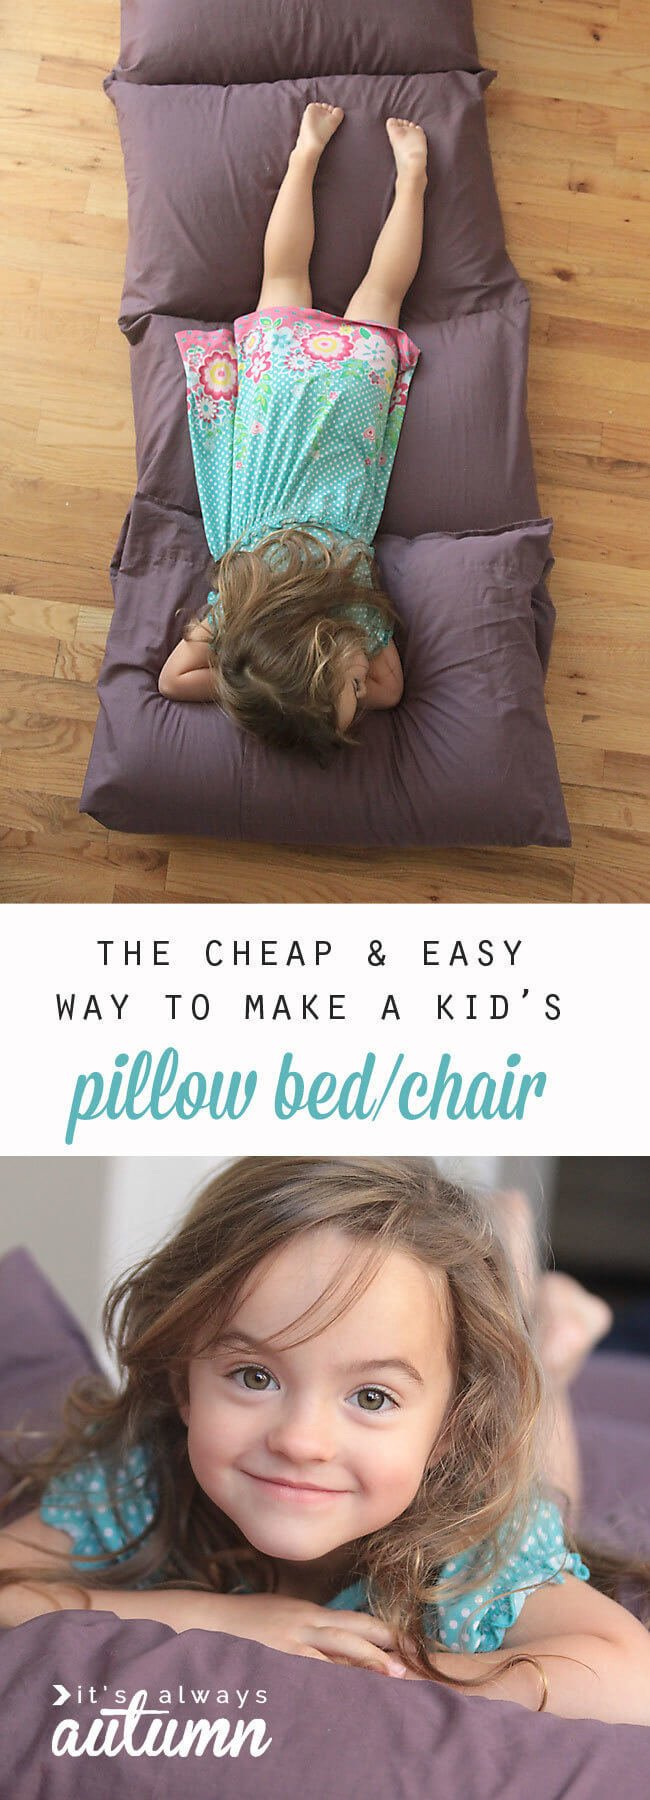 What do you say about making pillows for your children?